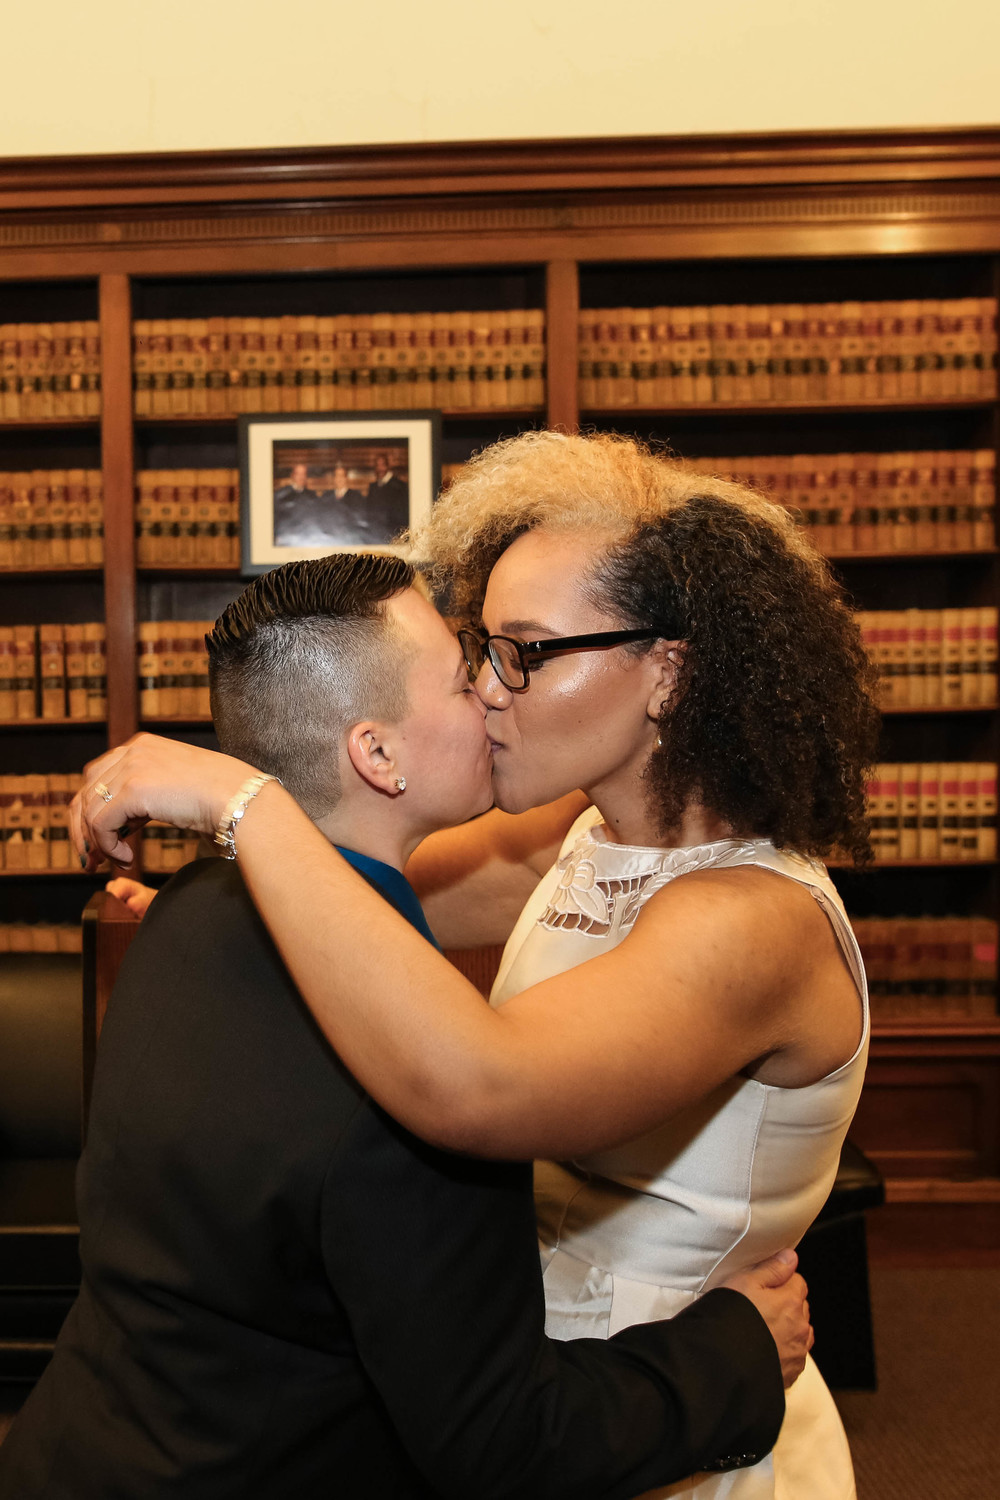 Sophia and Lisa Philadelphia City Hall Lesbian Elopement by Swiger Photography, Philly's Lesbian Photographer